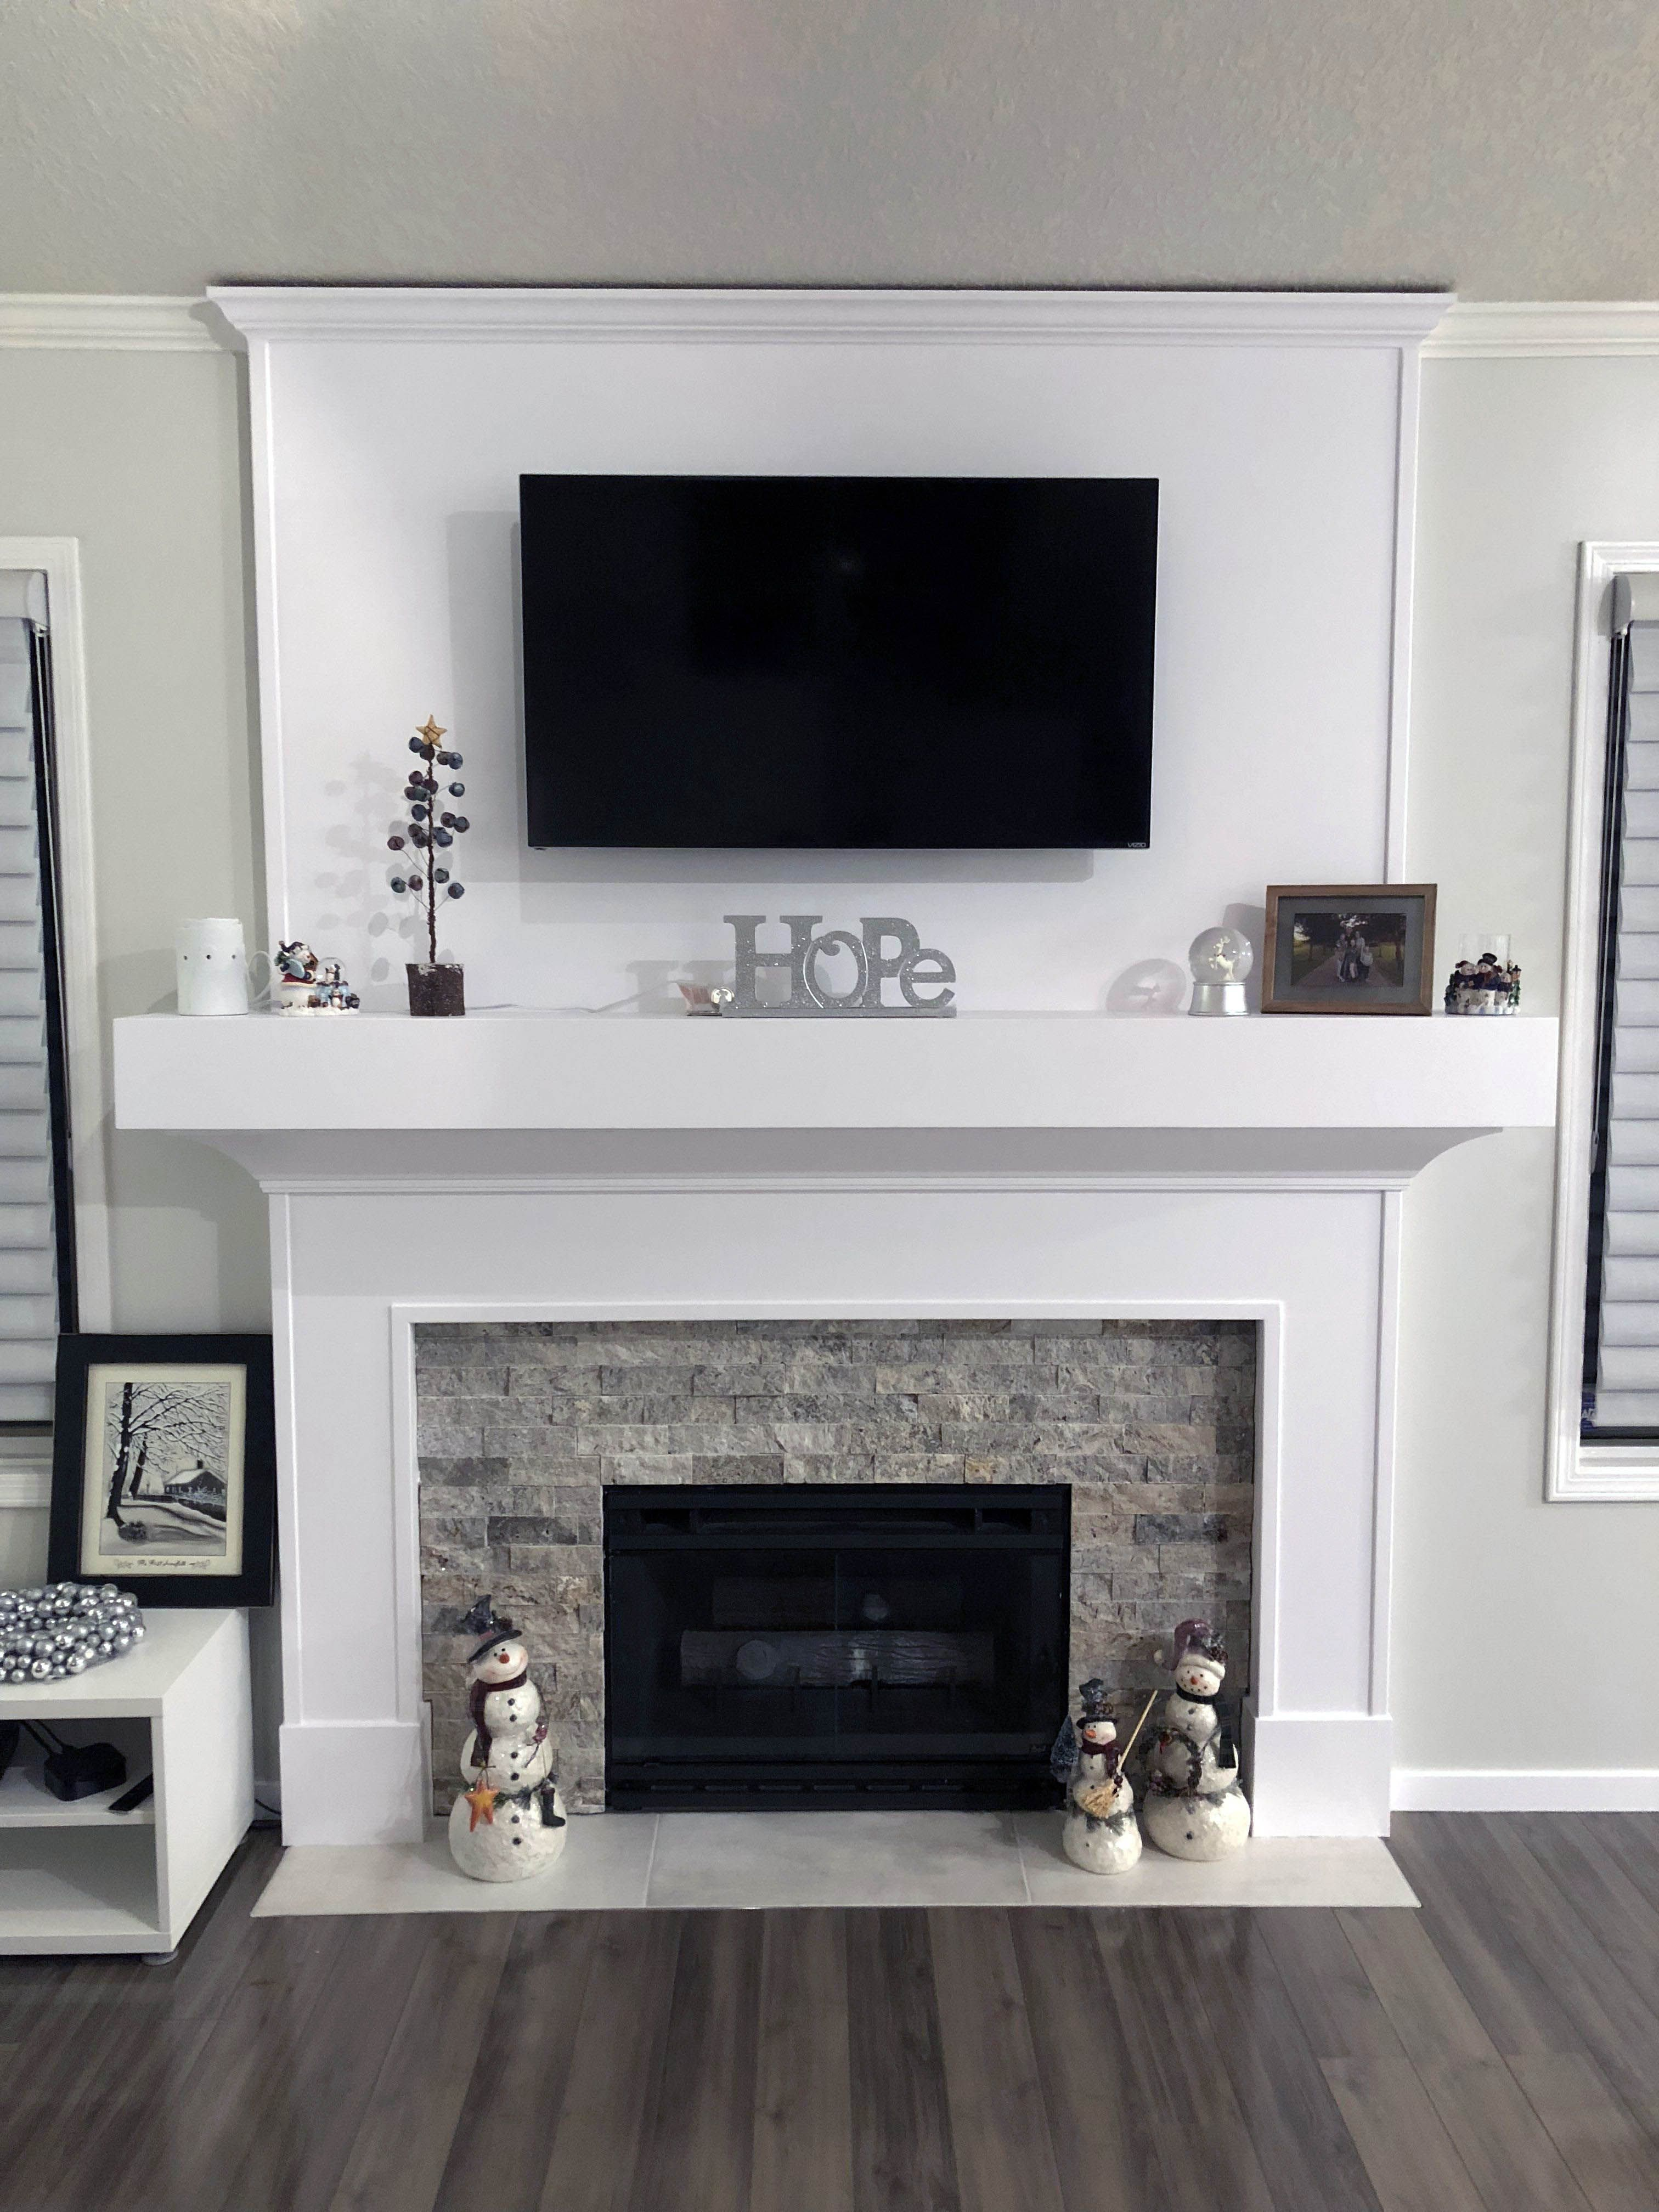 Fire Place Decorating Ideas Decoracao De Lareira Remodelacao